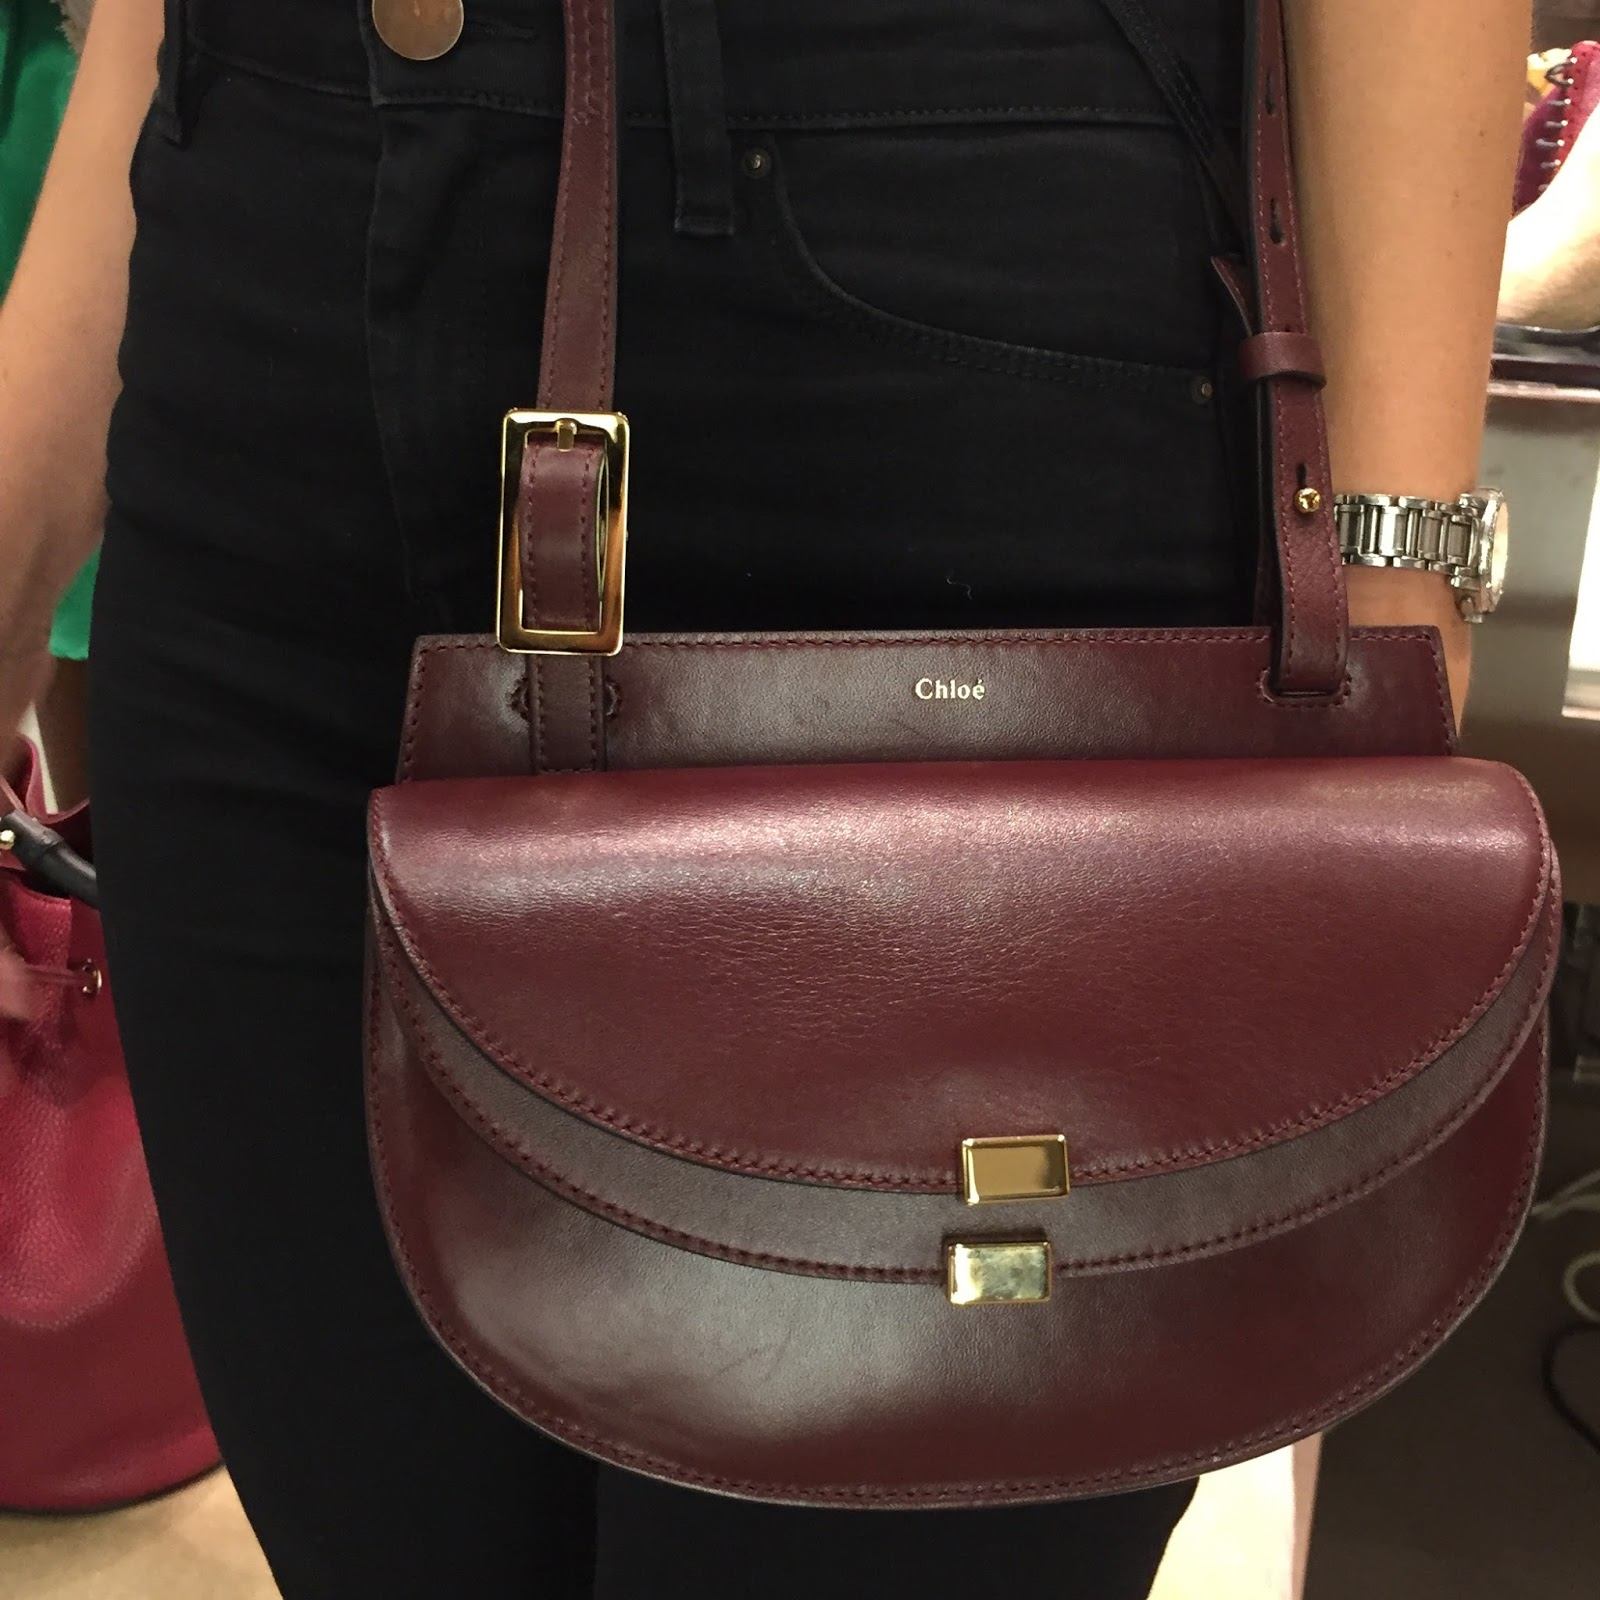 Chloe handbag, Purses to have, high end handbags for 2015